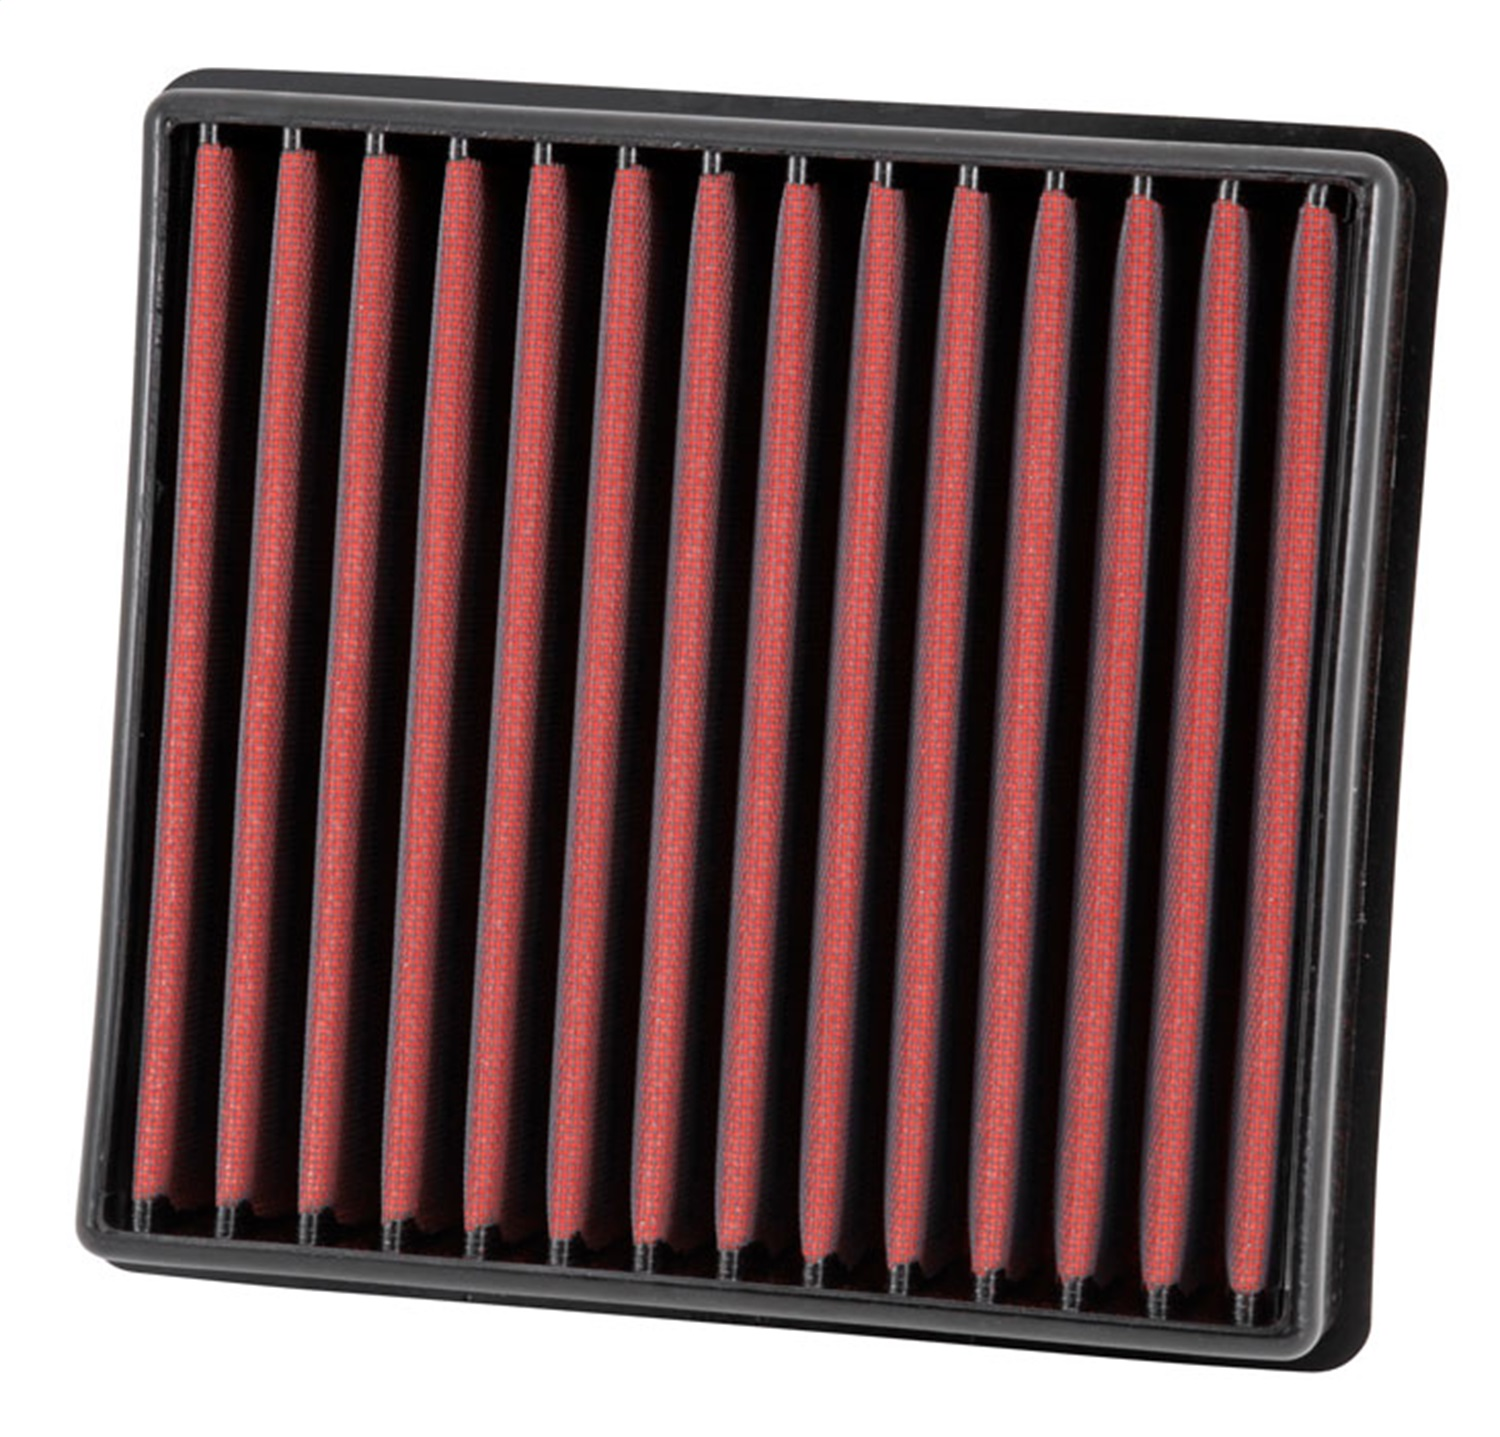 AEM Induction 28-20385 Dryflow Air Filter 28-20385